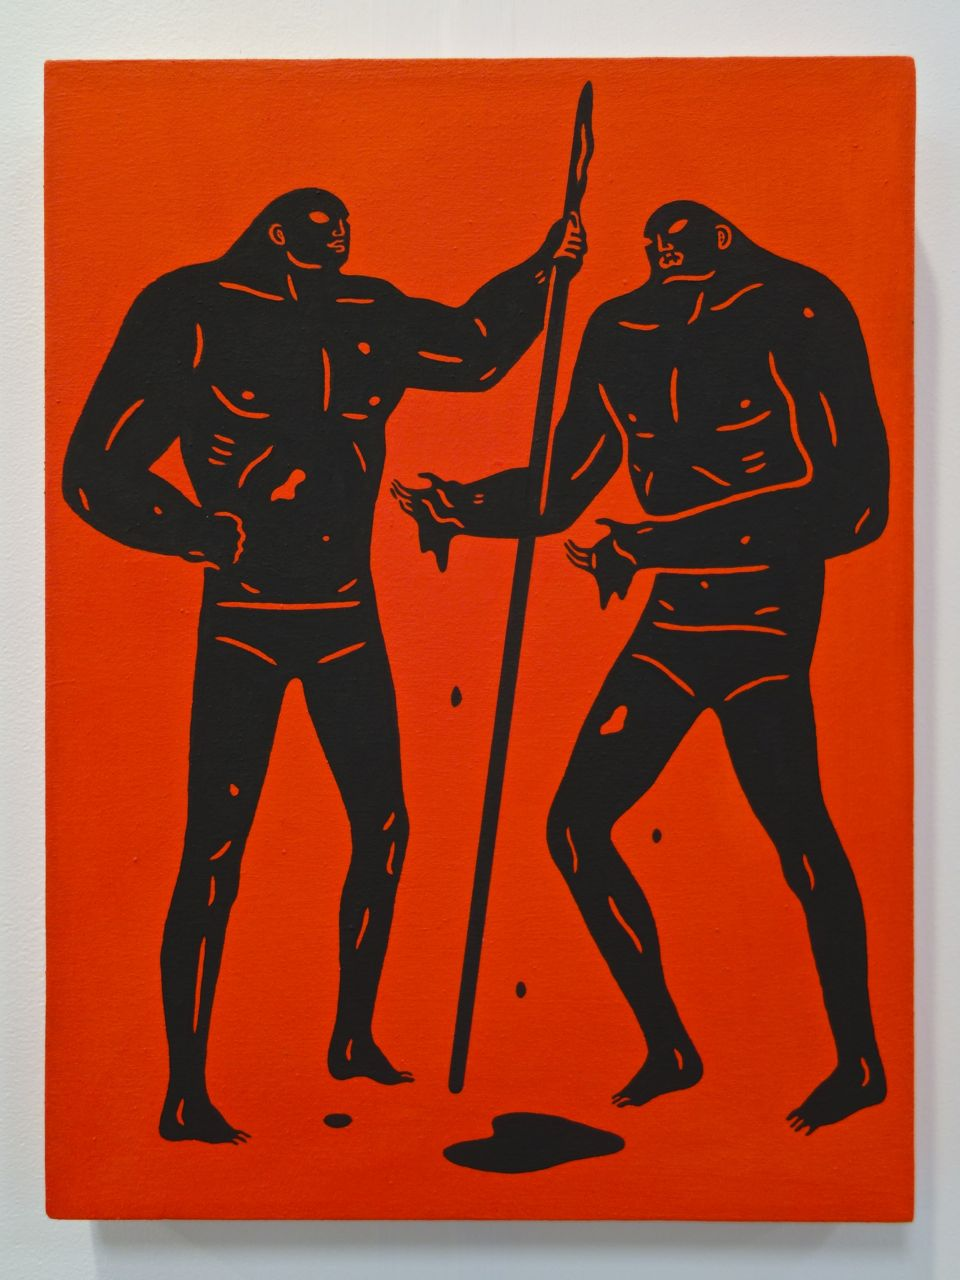 Cleon Peterson, 'Dirty Hands', 2015, Acrylic on canvas, 40 x 30 cm, Over The Influence (Hong Kong)